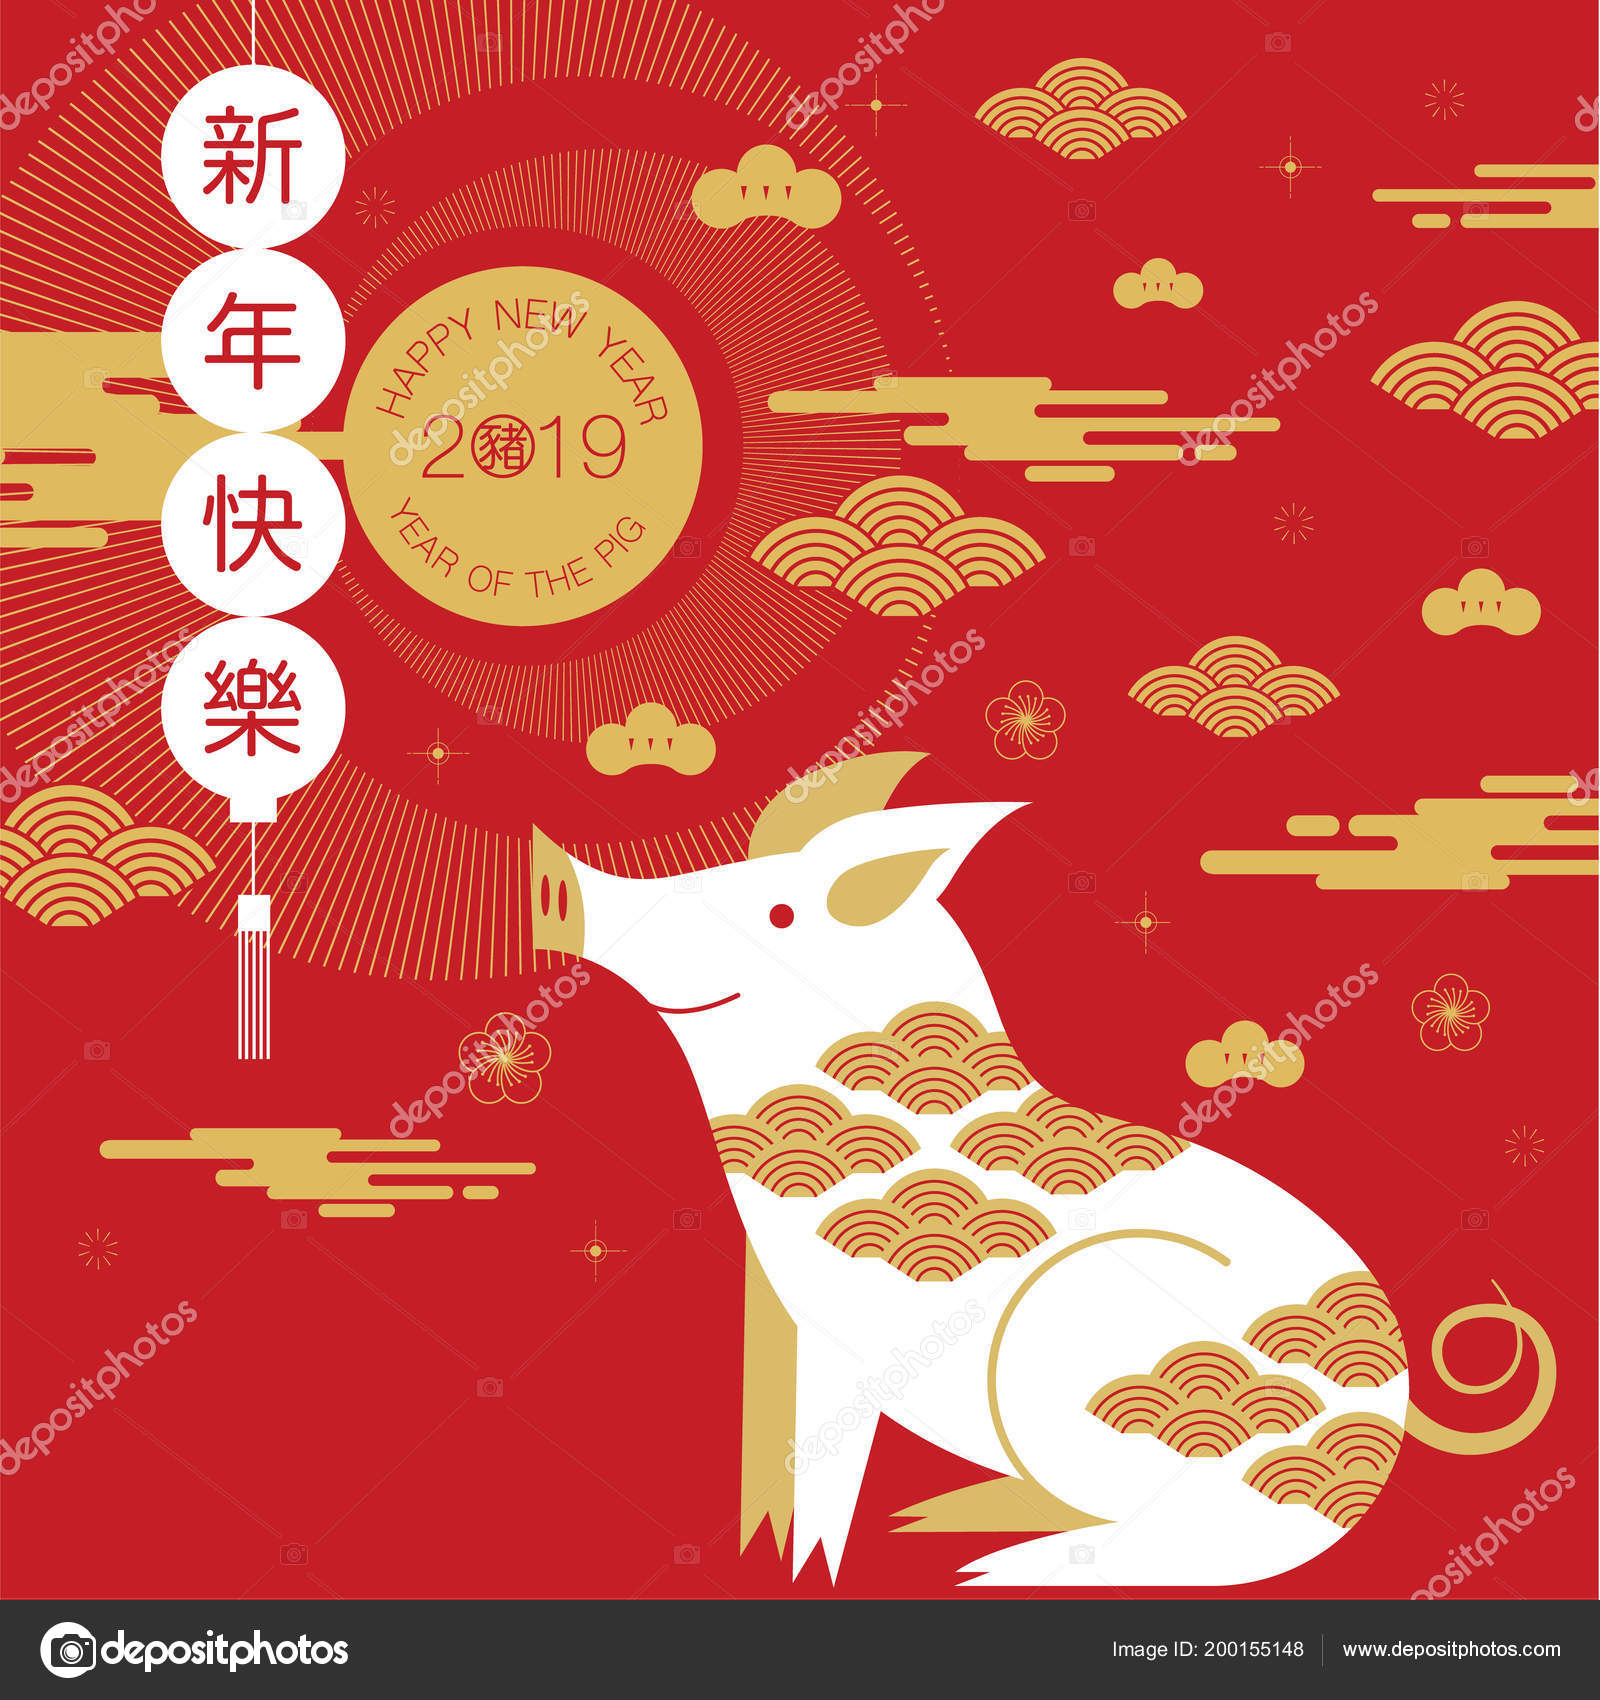 happy new year 2019 chinese new year greetings year of the pig fortune translation happy new year rich pig vector by pacharada